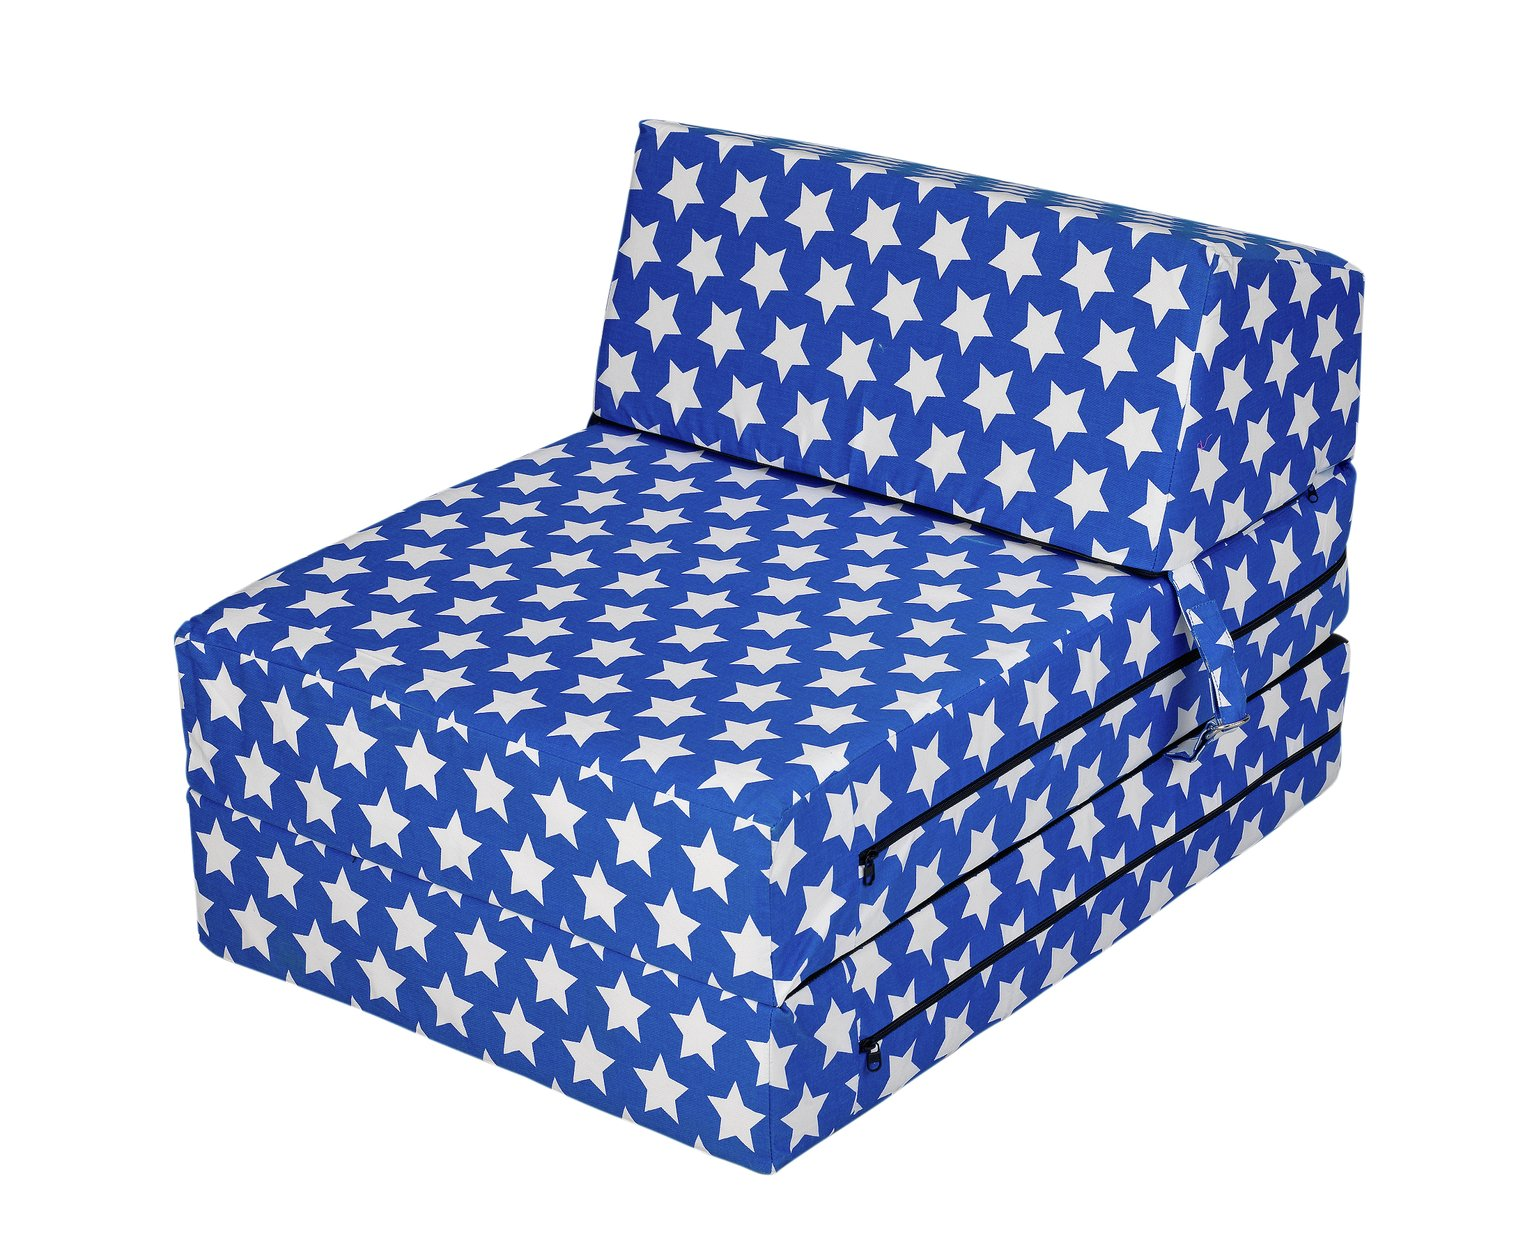 folding chair bed argos swivel value city buy home flip out stars sofa beds chairbeds and click to zoom